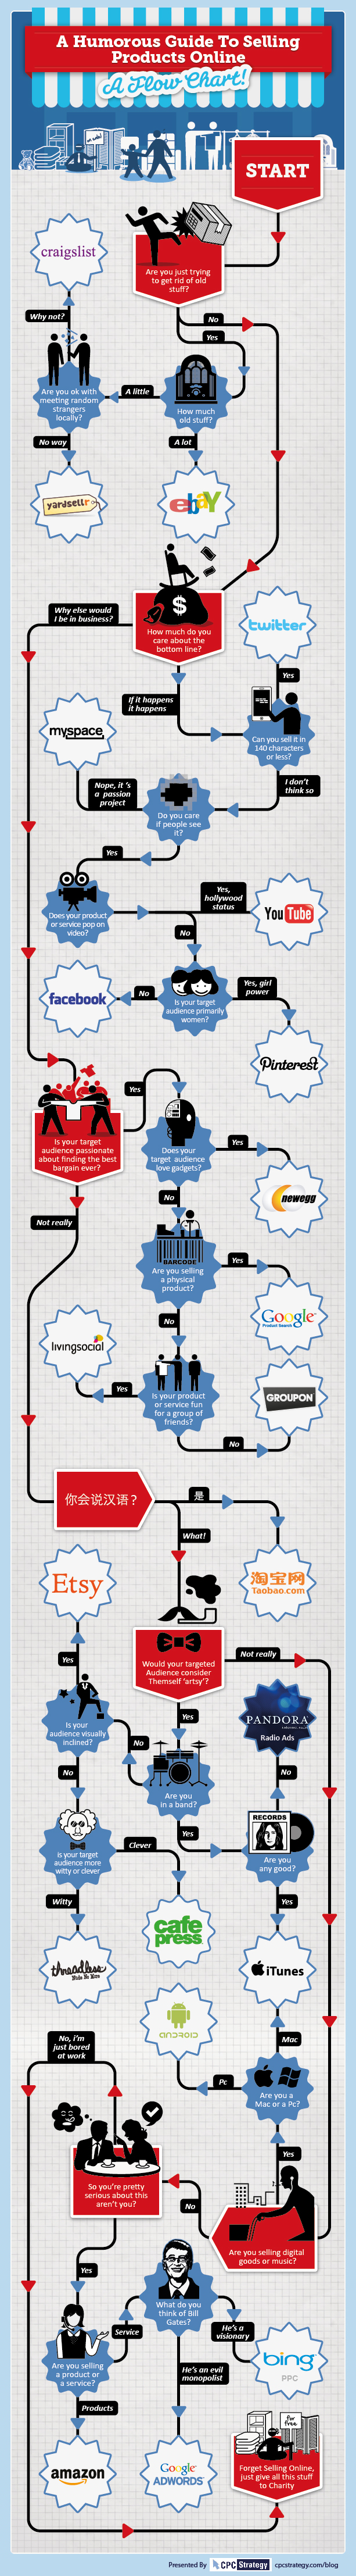 sell-products-online-infographic